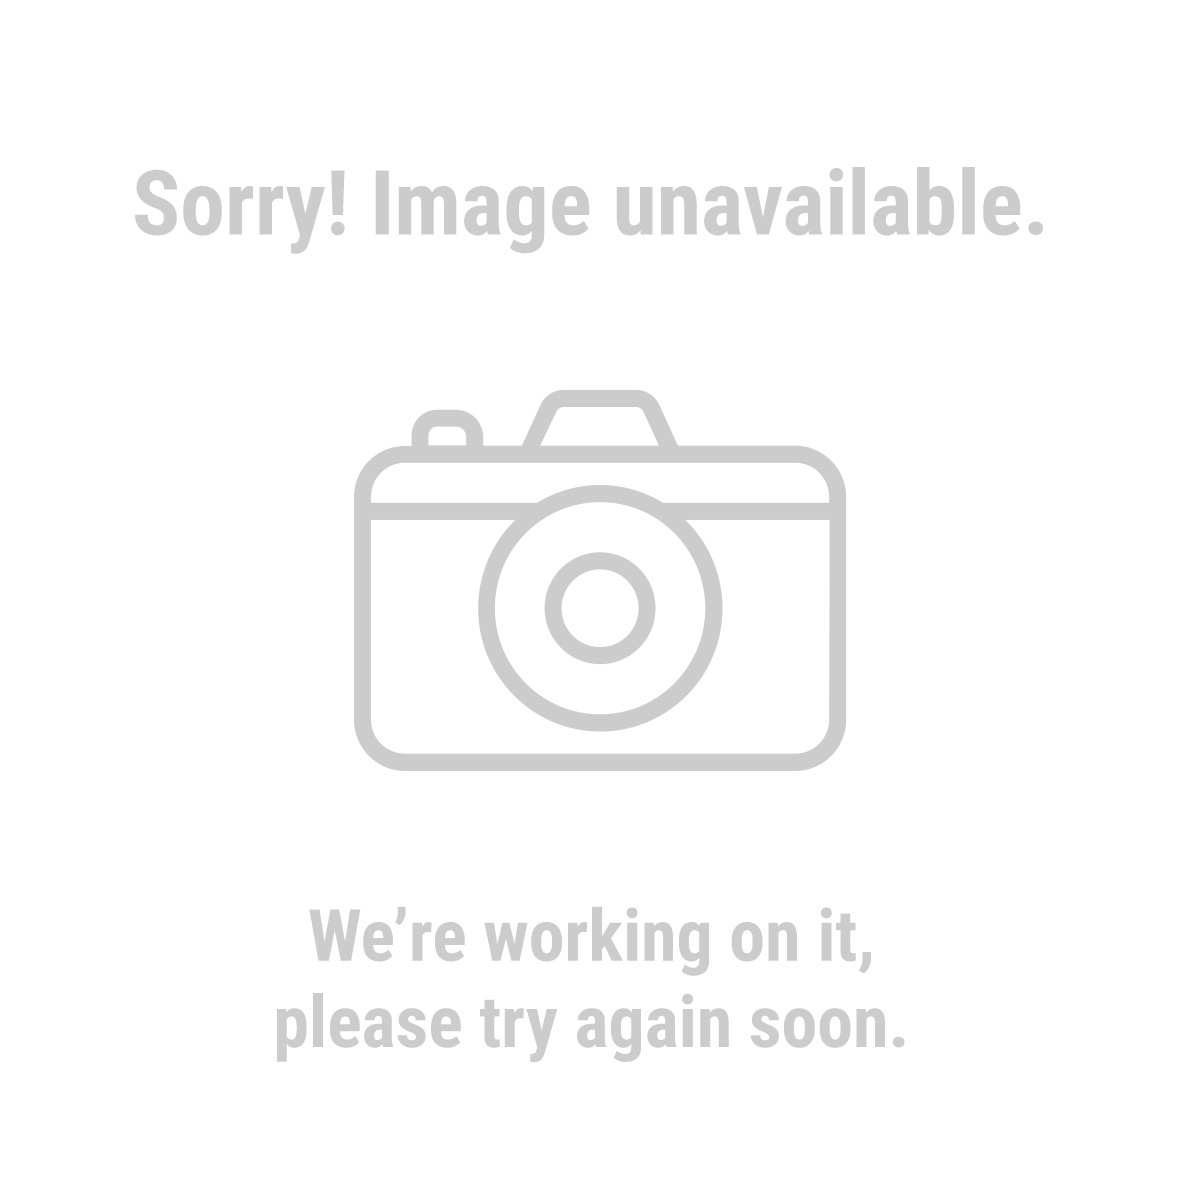 63413 1 in. x 25 ft. PVC Discharge Hose